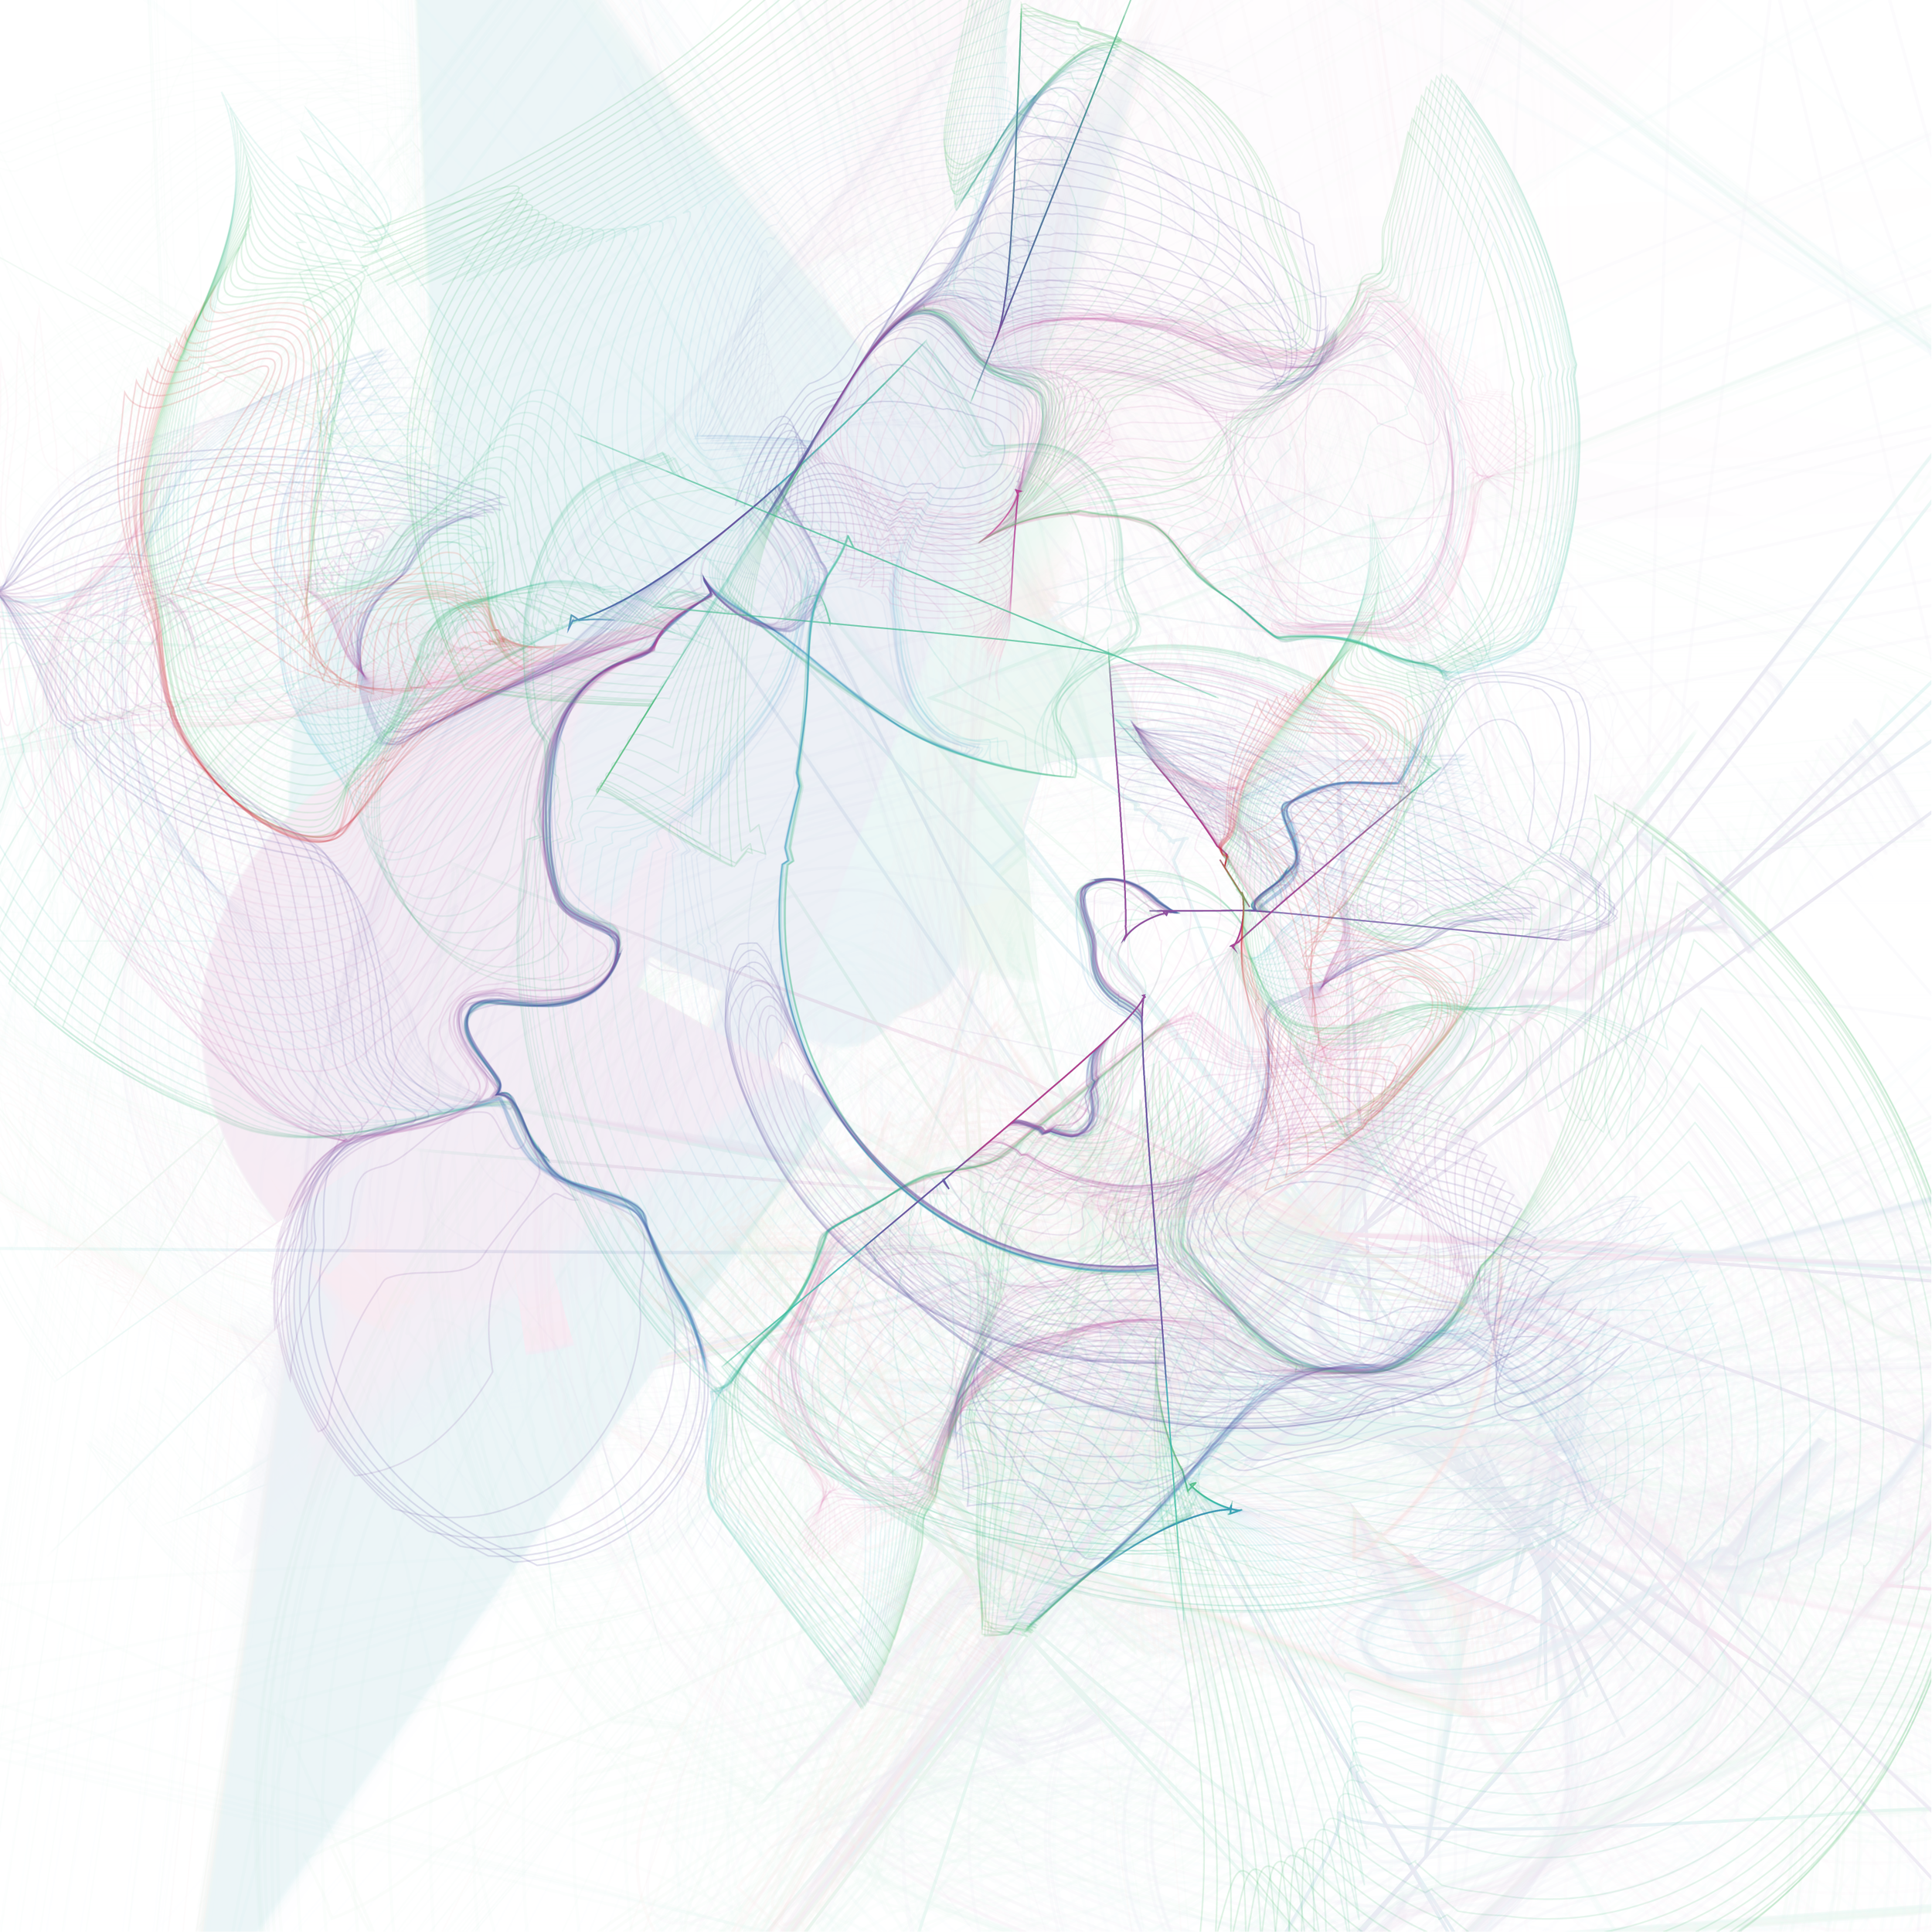 08082017_f14233_2019redux_3_small-01.png